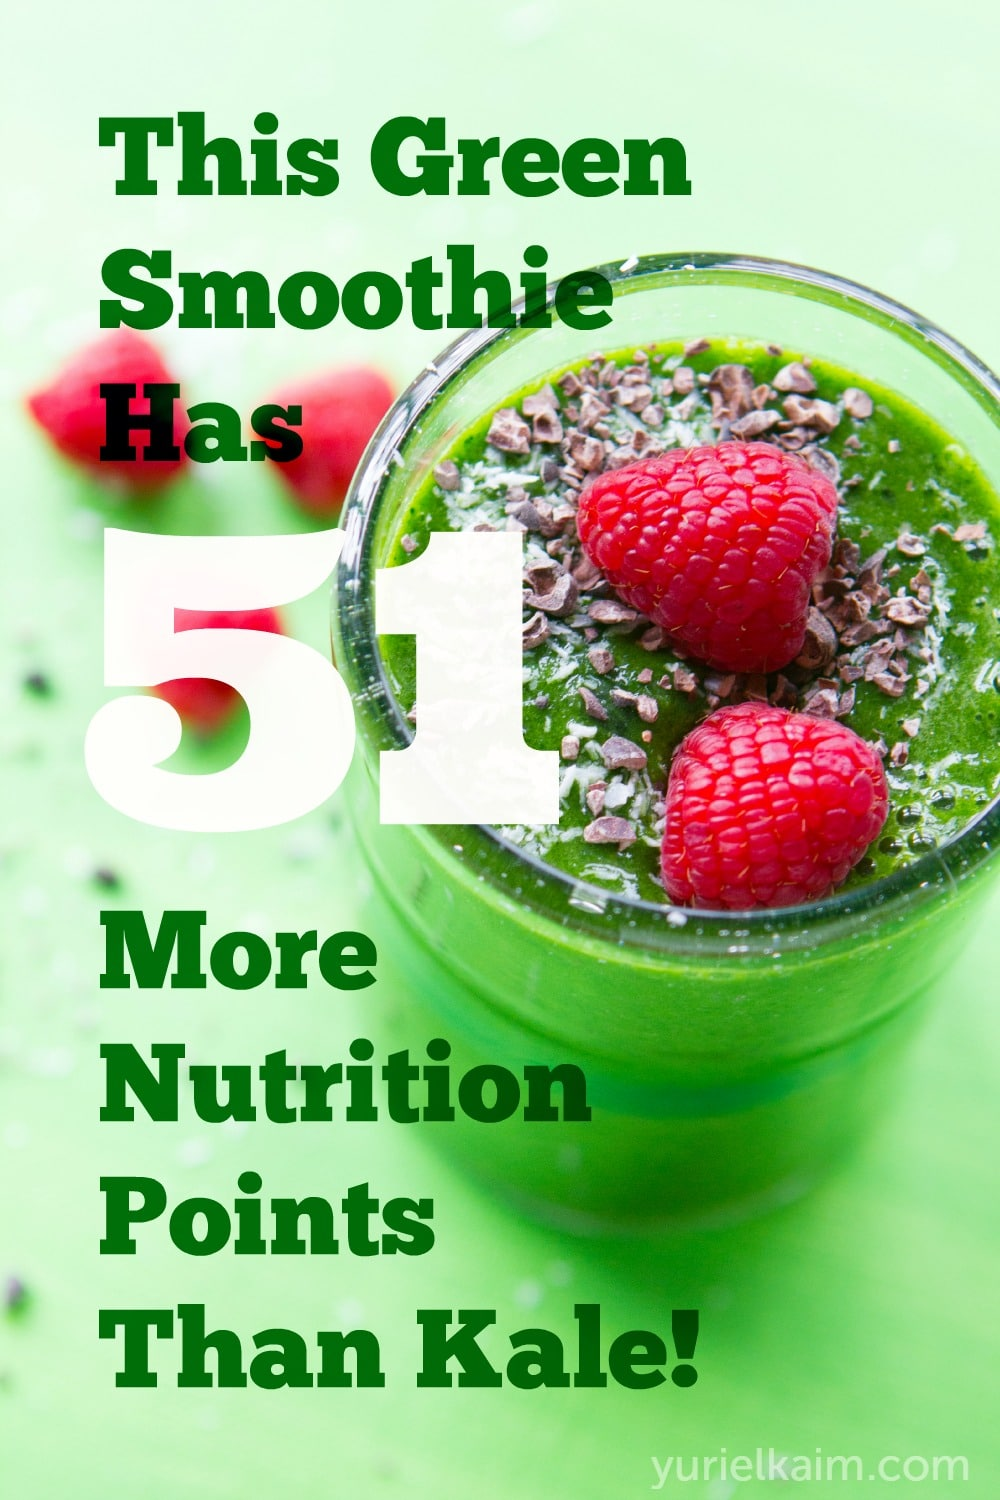 Is This the Most Nutritious Smoothie In the World?